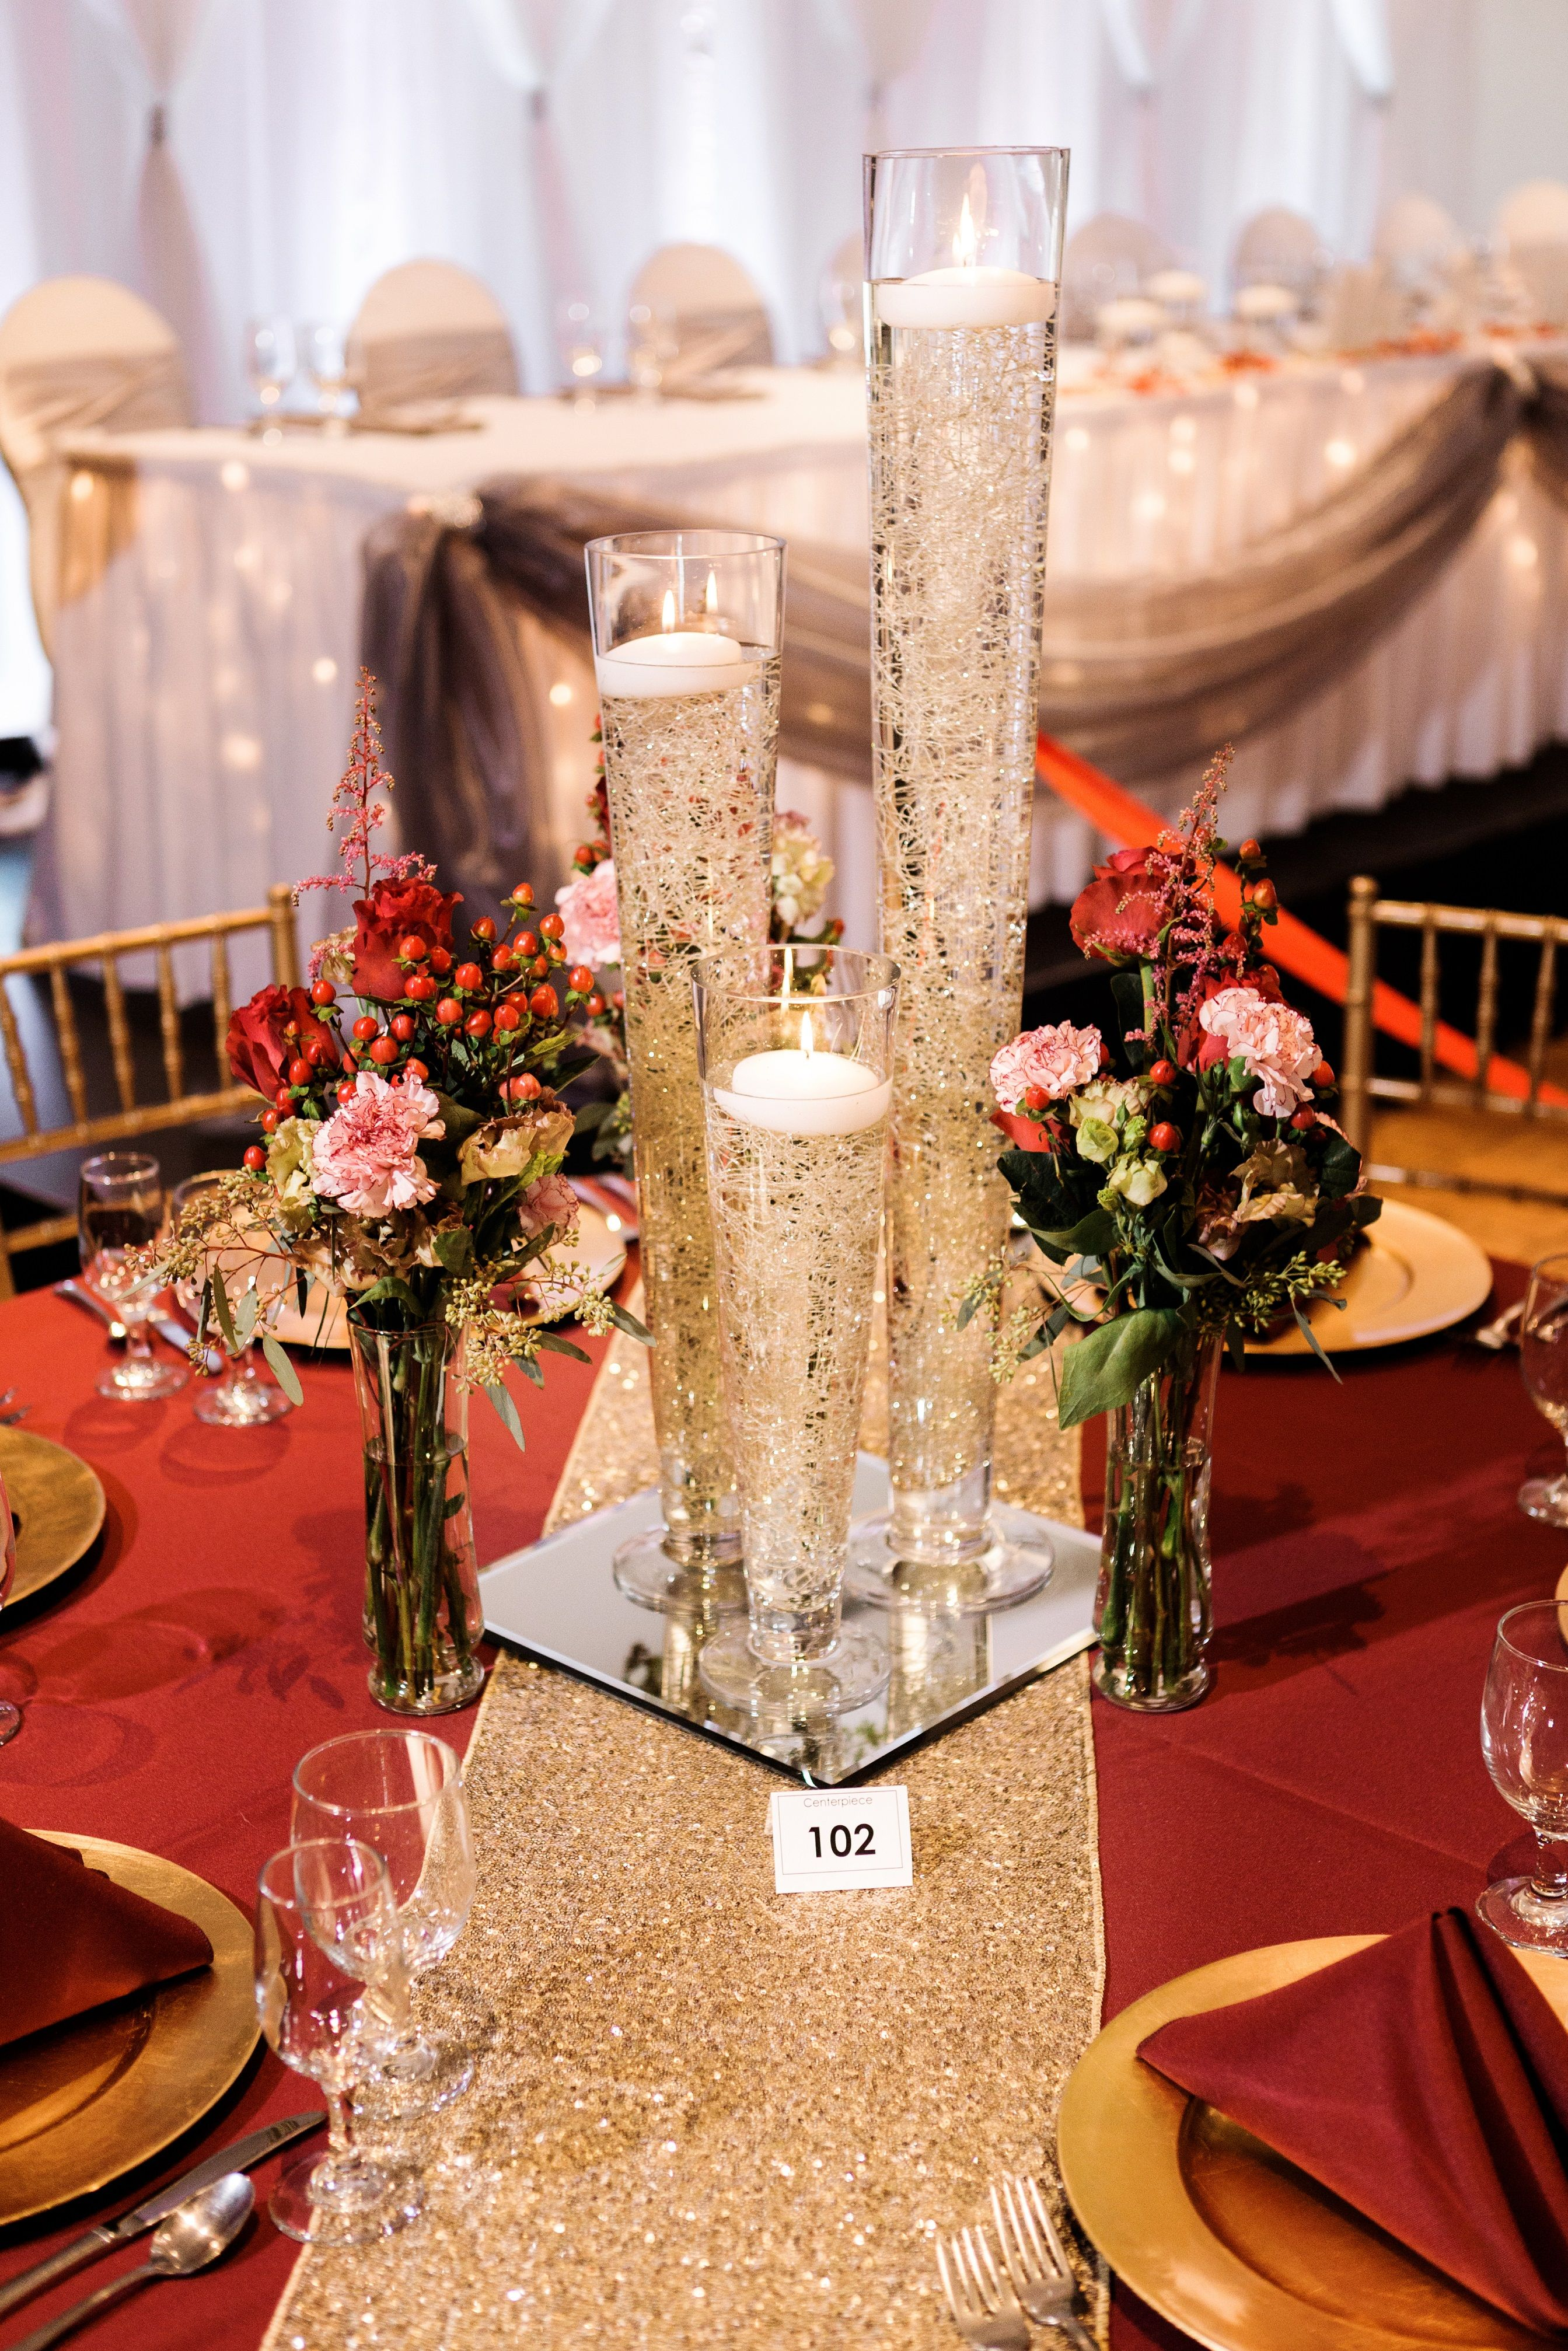 Wedding decor maroon and gold  Centerpiece created by Cerutius Floral and Decor Team Photography